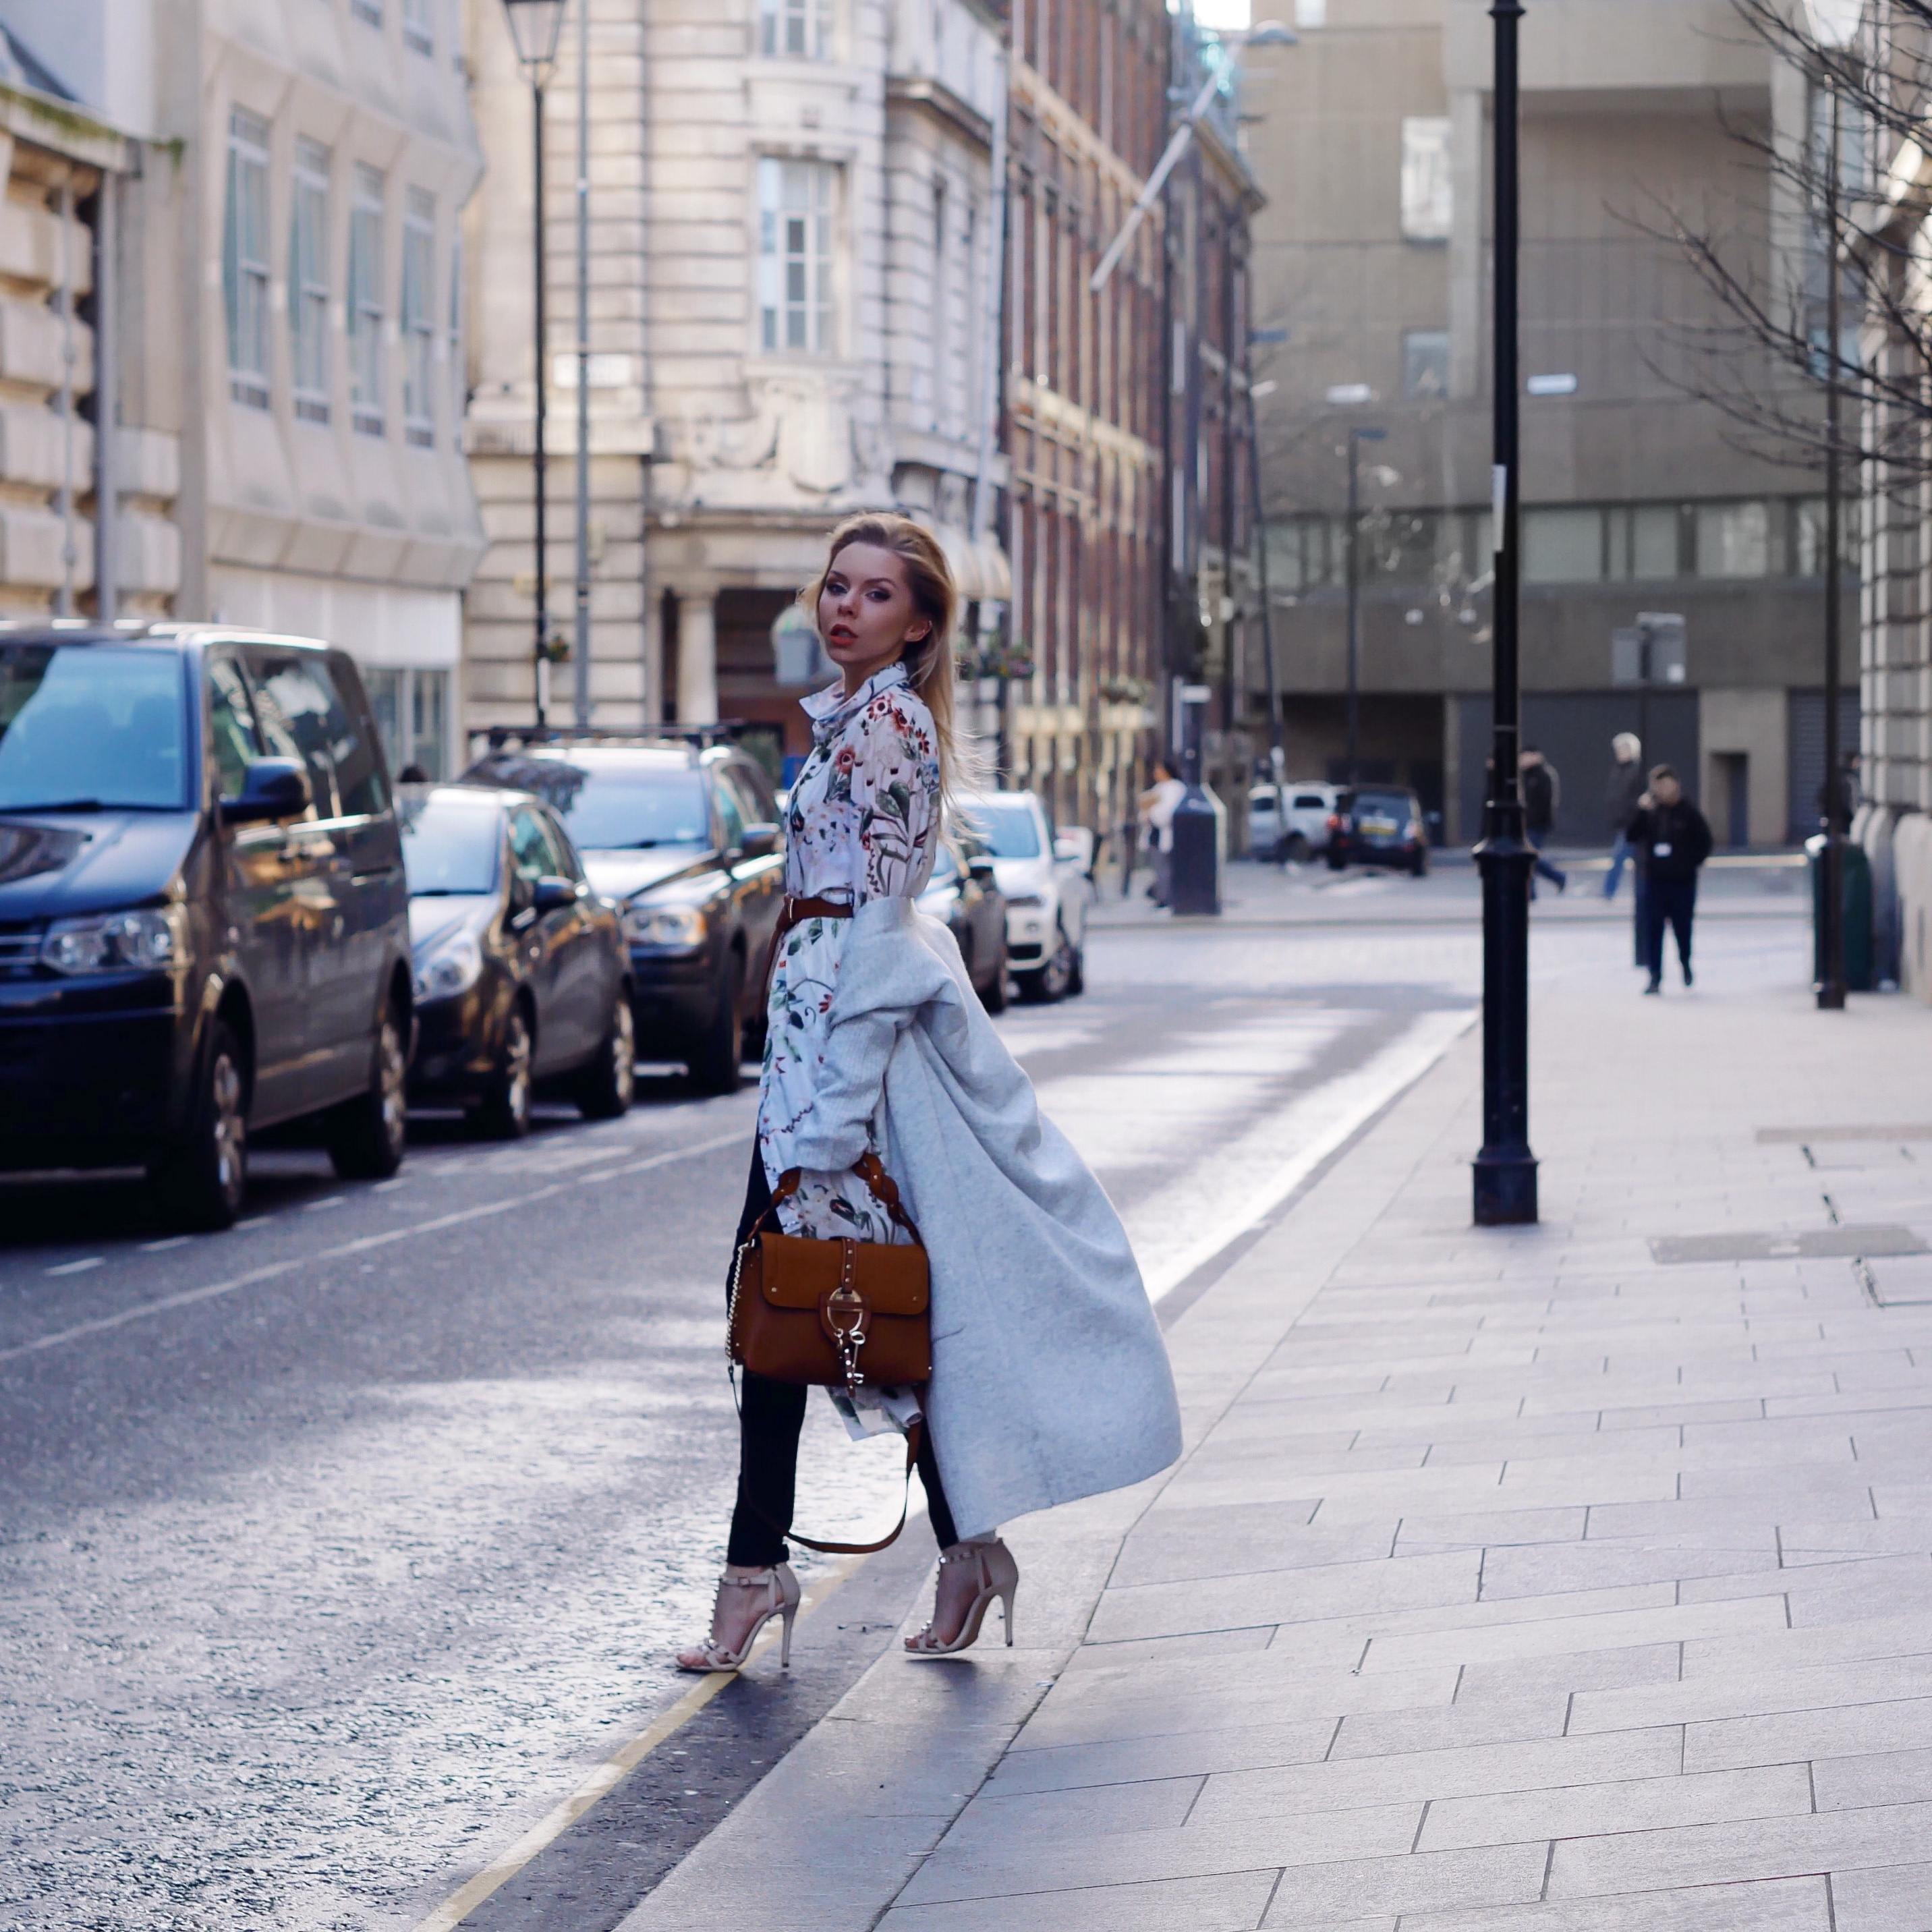 Laura Blair, Denim, jeans, how to style jeans, how to style denim, factory fashion, london fashion girl, london fashion, london girl, london fashion week